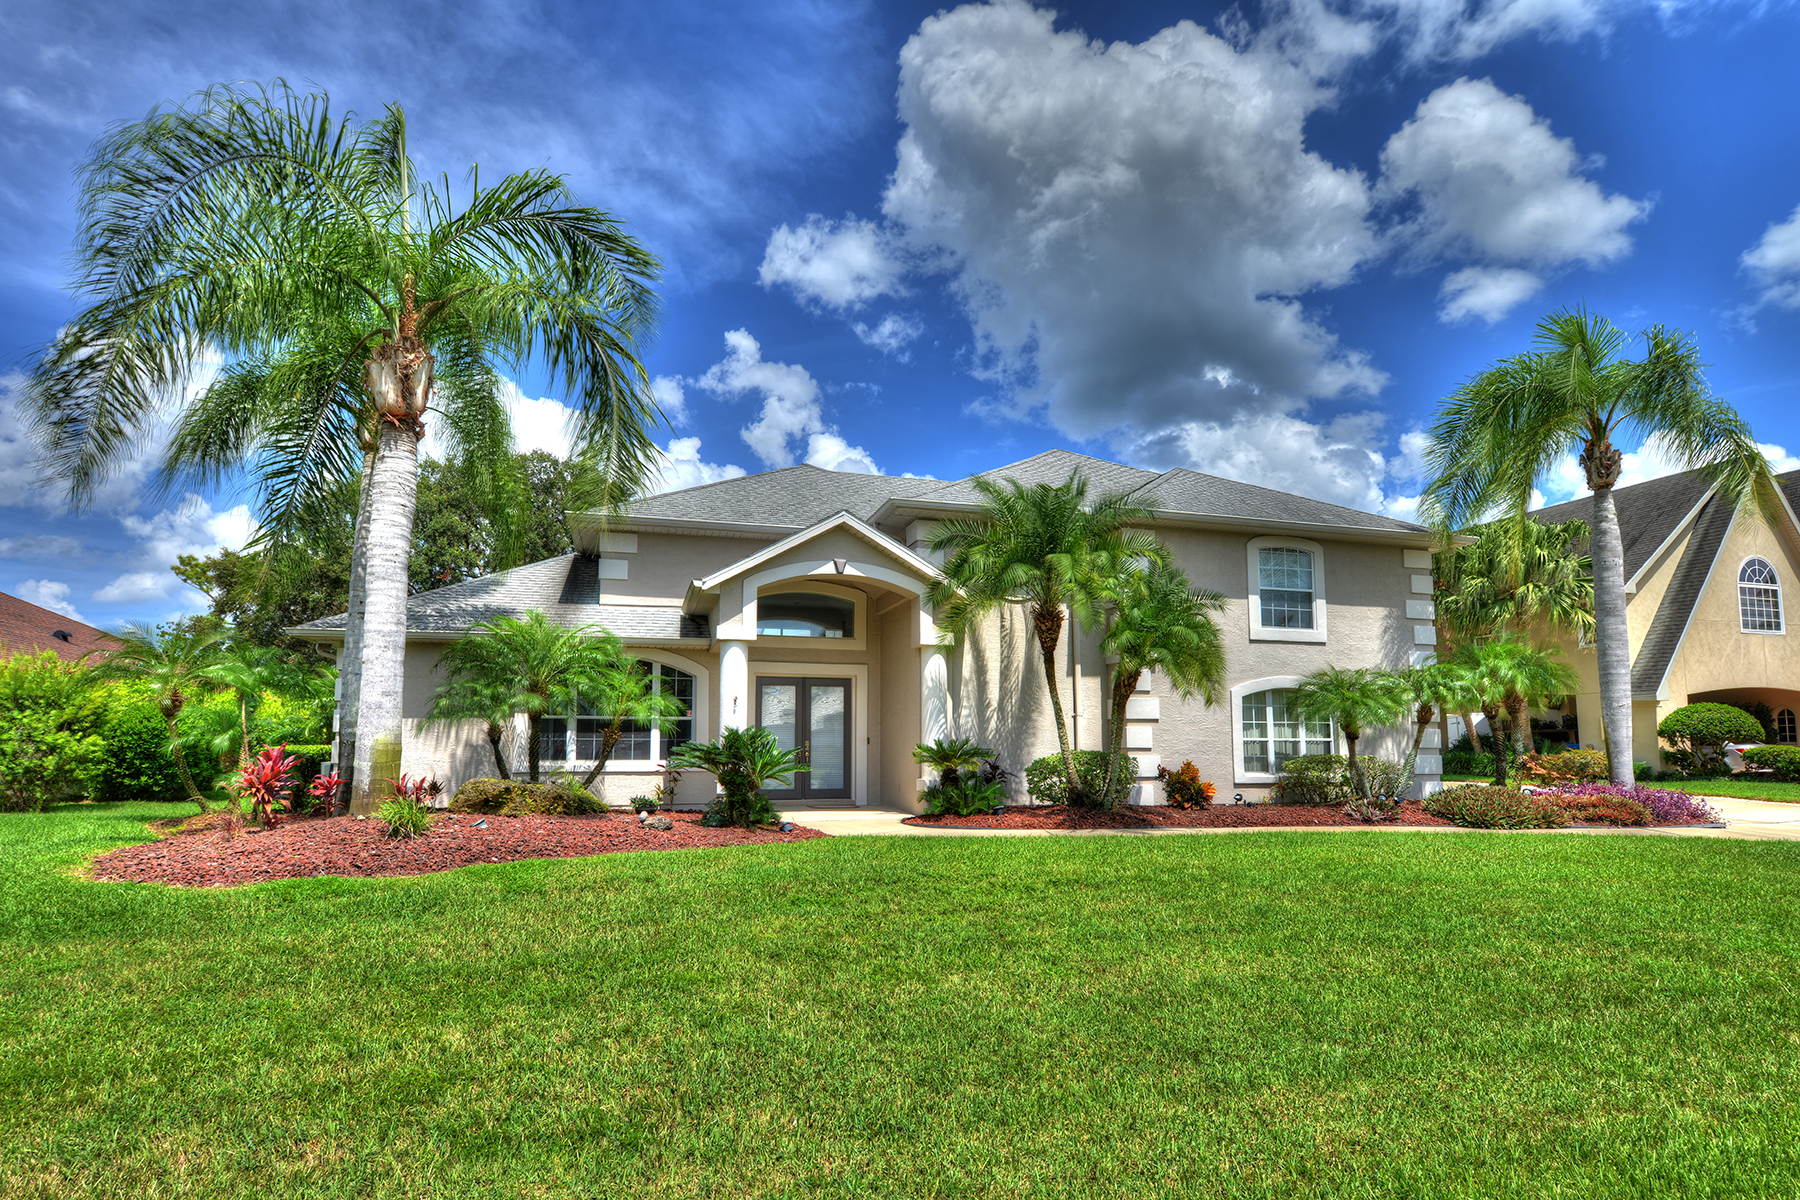 Single Family Home for Sale at SPRUCE CREEK AND THE BEACHES 2652 Slow Flight Dr, Port Orange, Florida 32128 United States